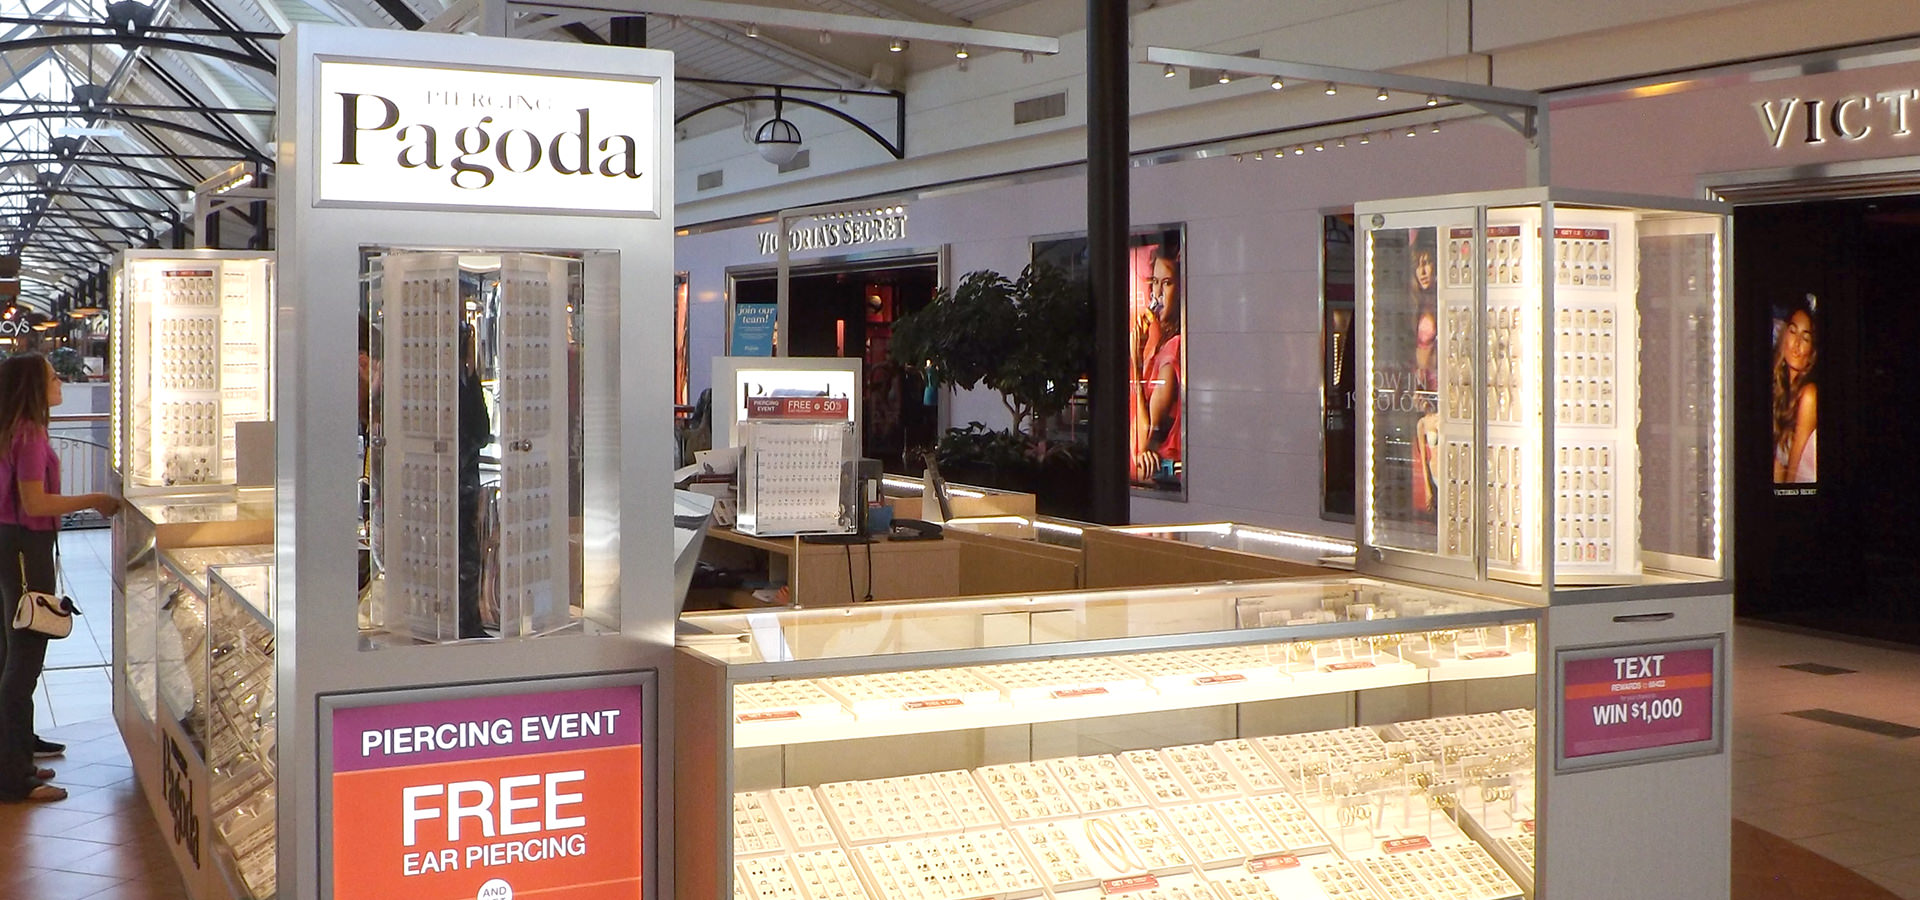 Piercing Pagoda Near Me In Dulles Va Dulles Town Center